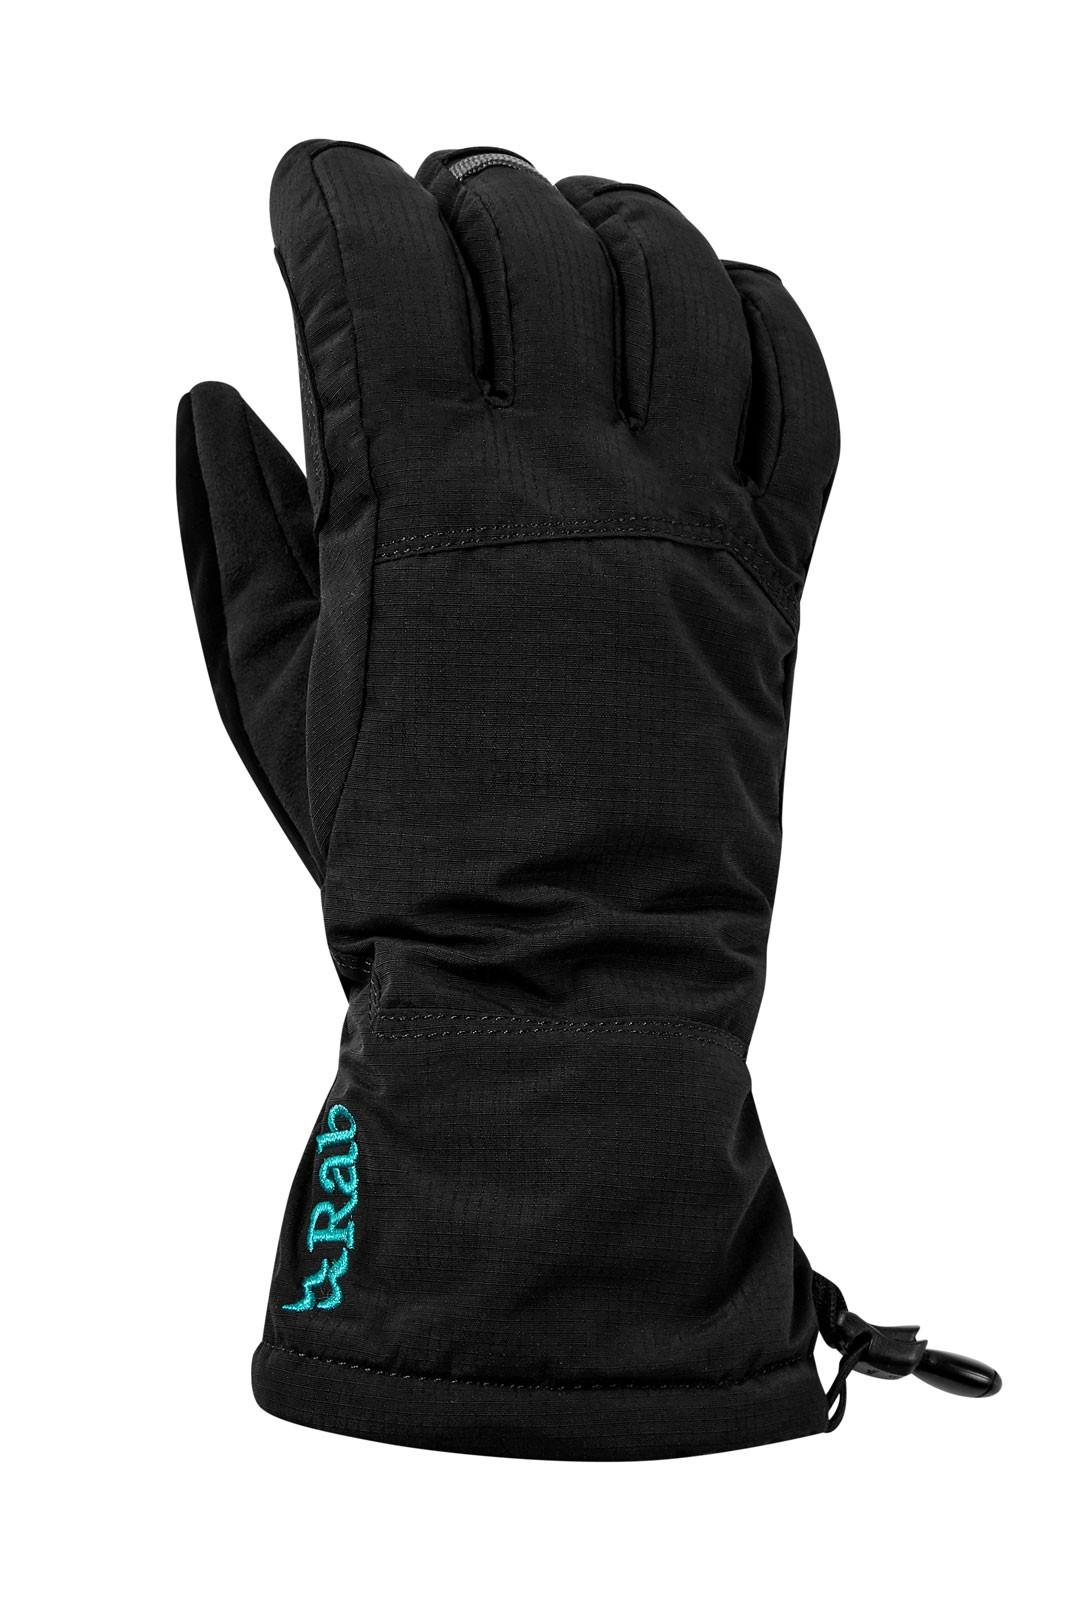 Rab Storm Glove Womens - Black